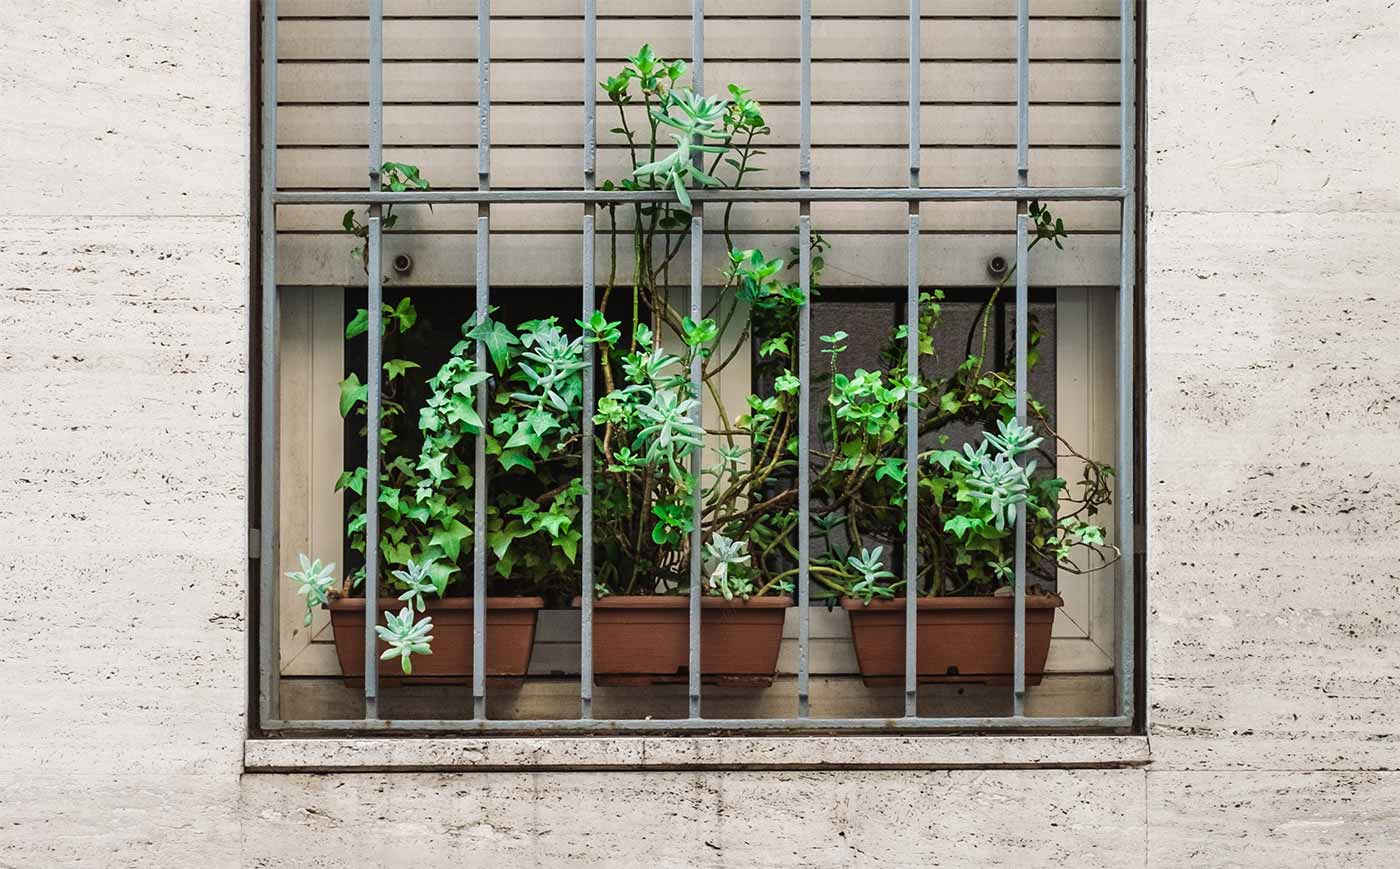 Plants in a window with bars